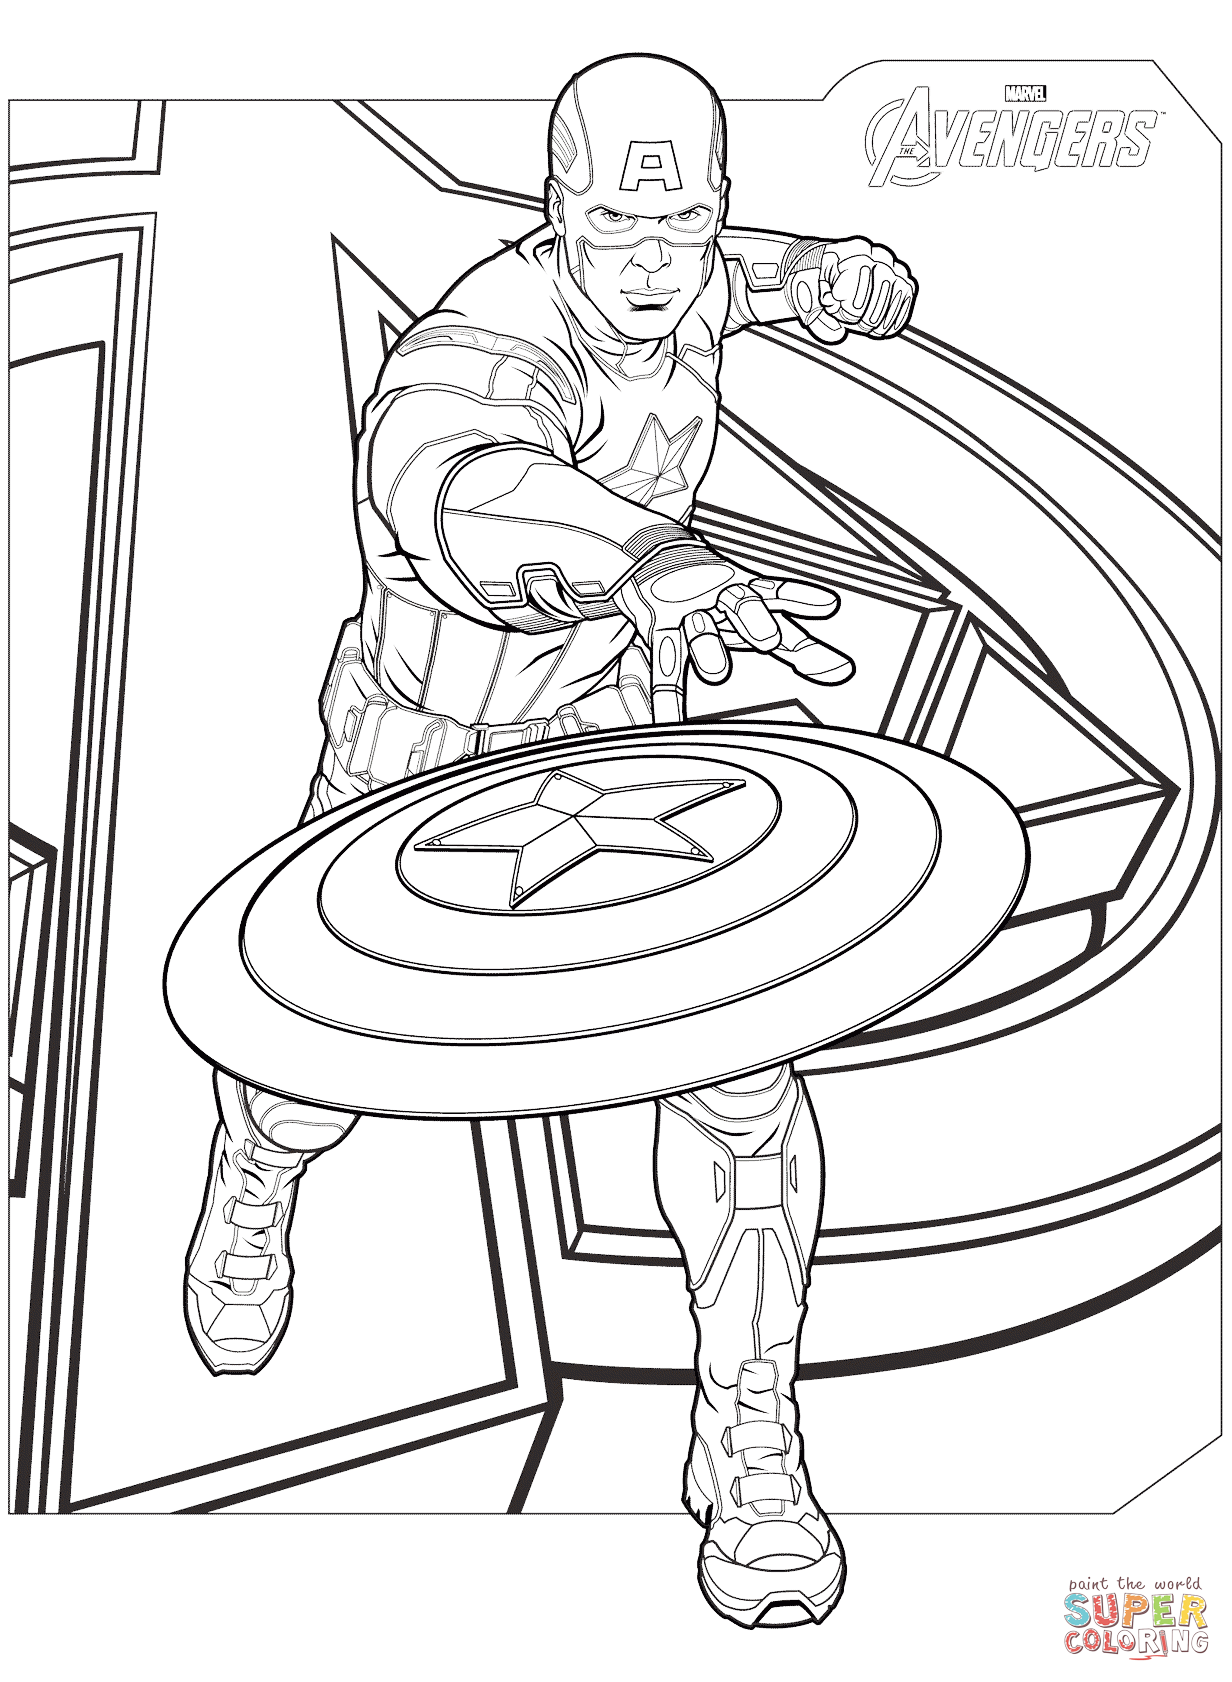 Free Captain America Coloring Pages With Avengers Captain America Page Superhero Coloring Pages Superhero Coloring Avengers Coloring